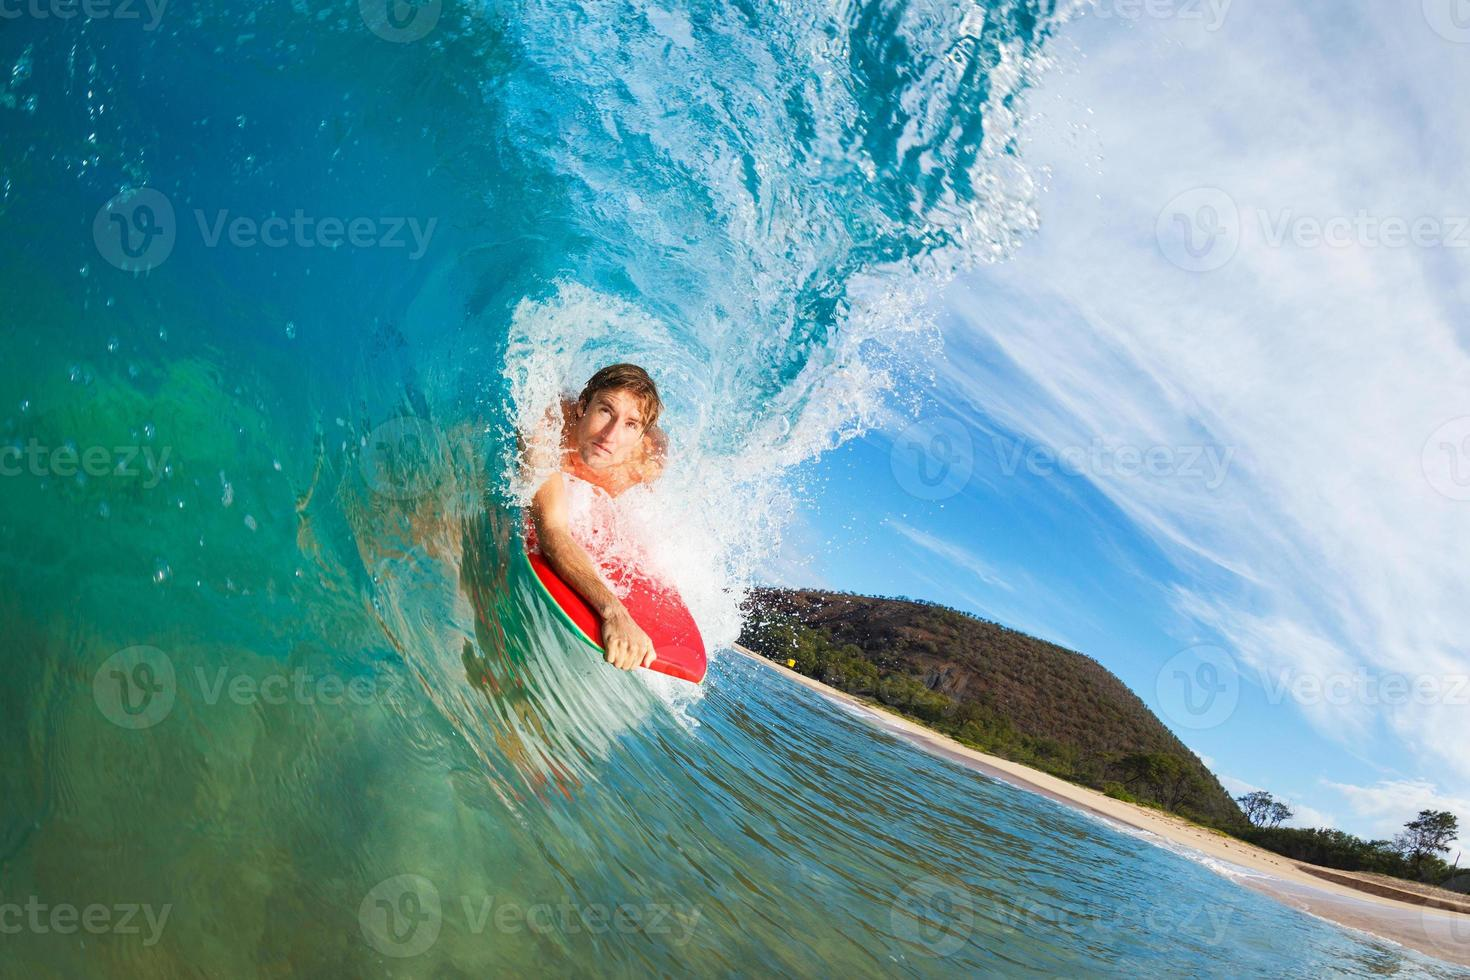 Riding the Surf photo